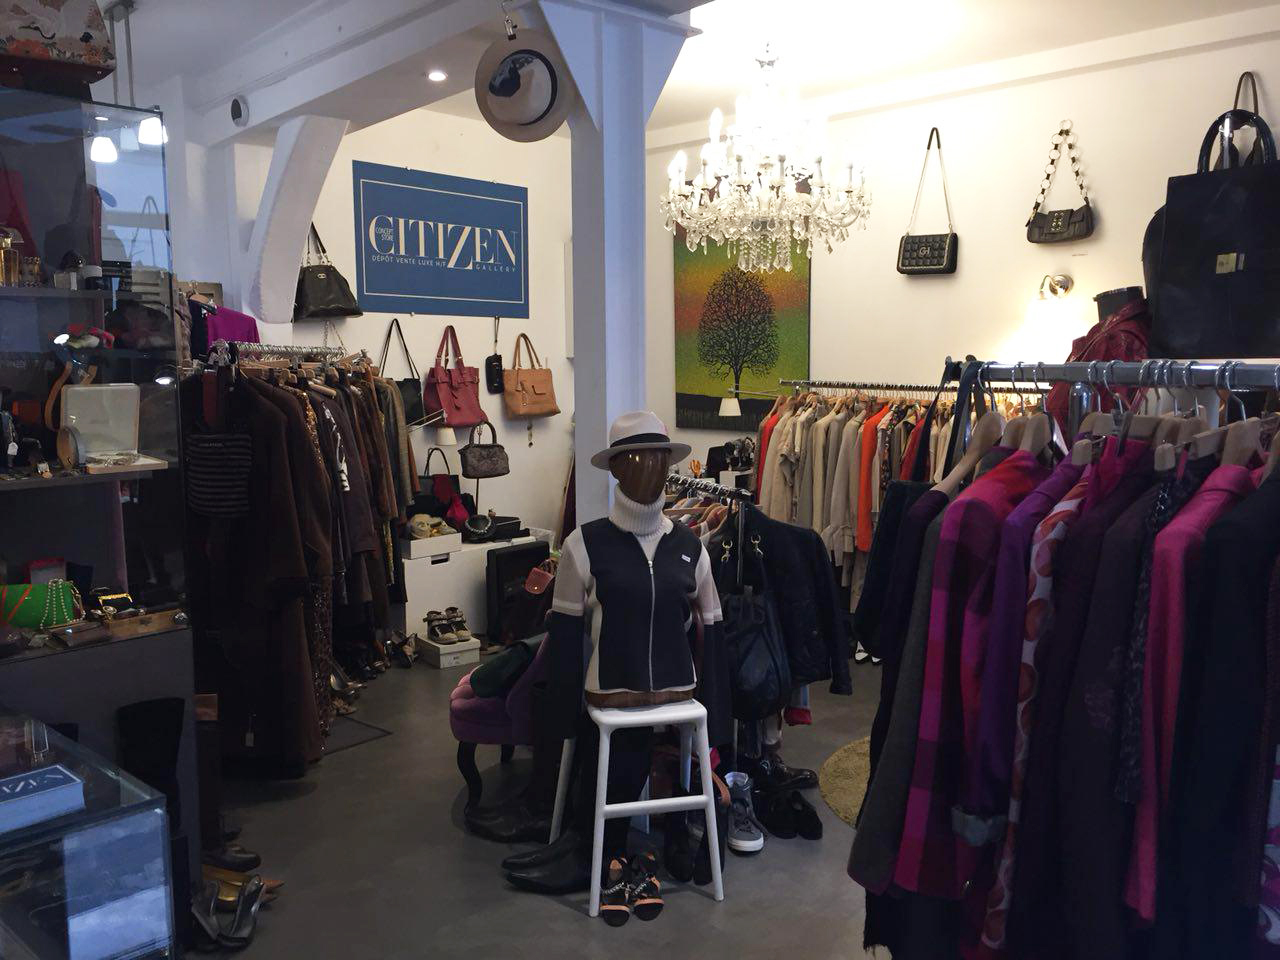 Citizen offers a good collection of designer handbags, shoes and clothes.